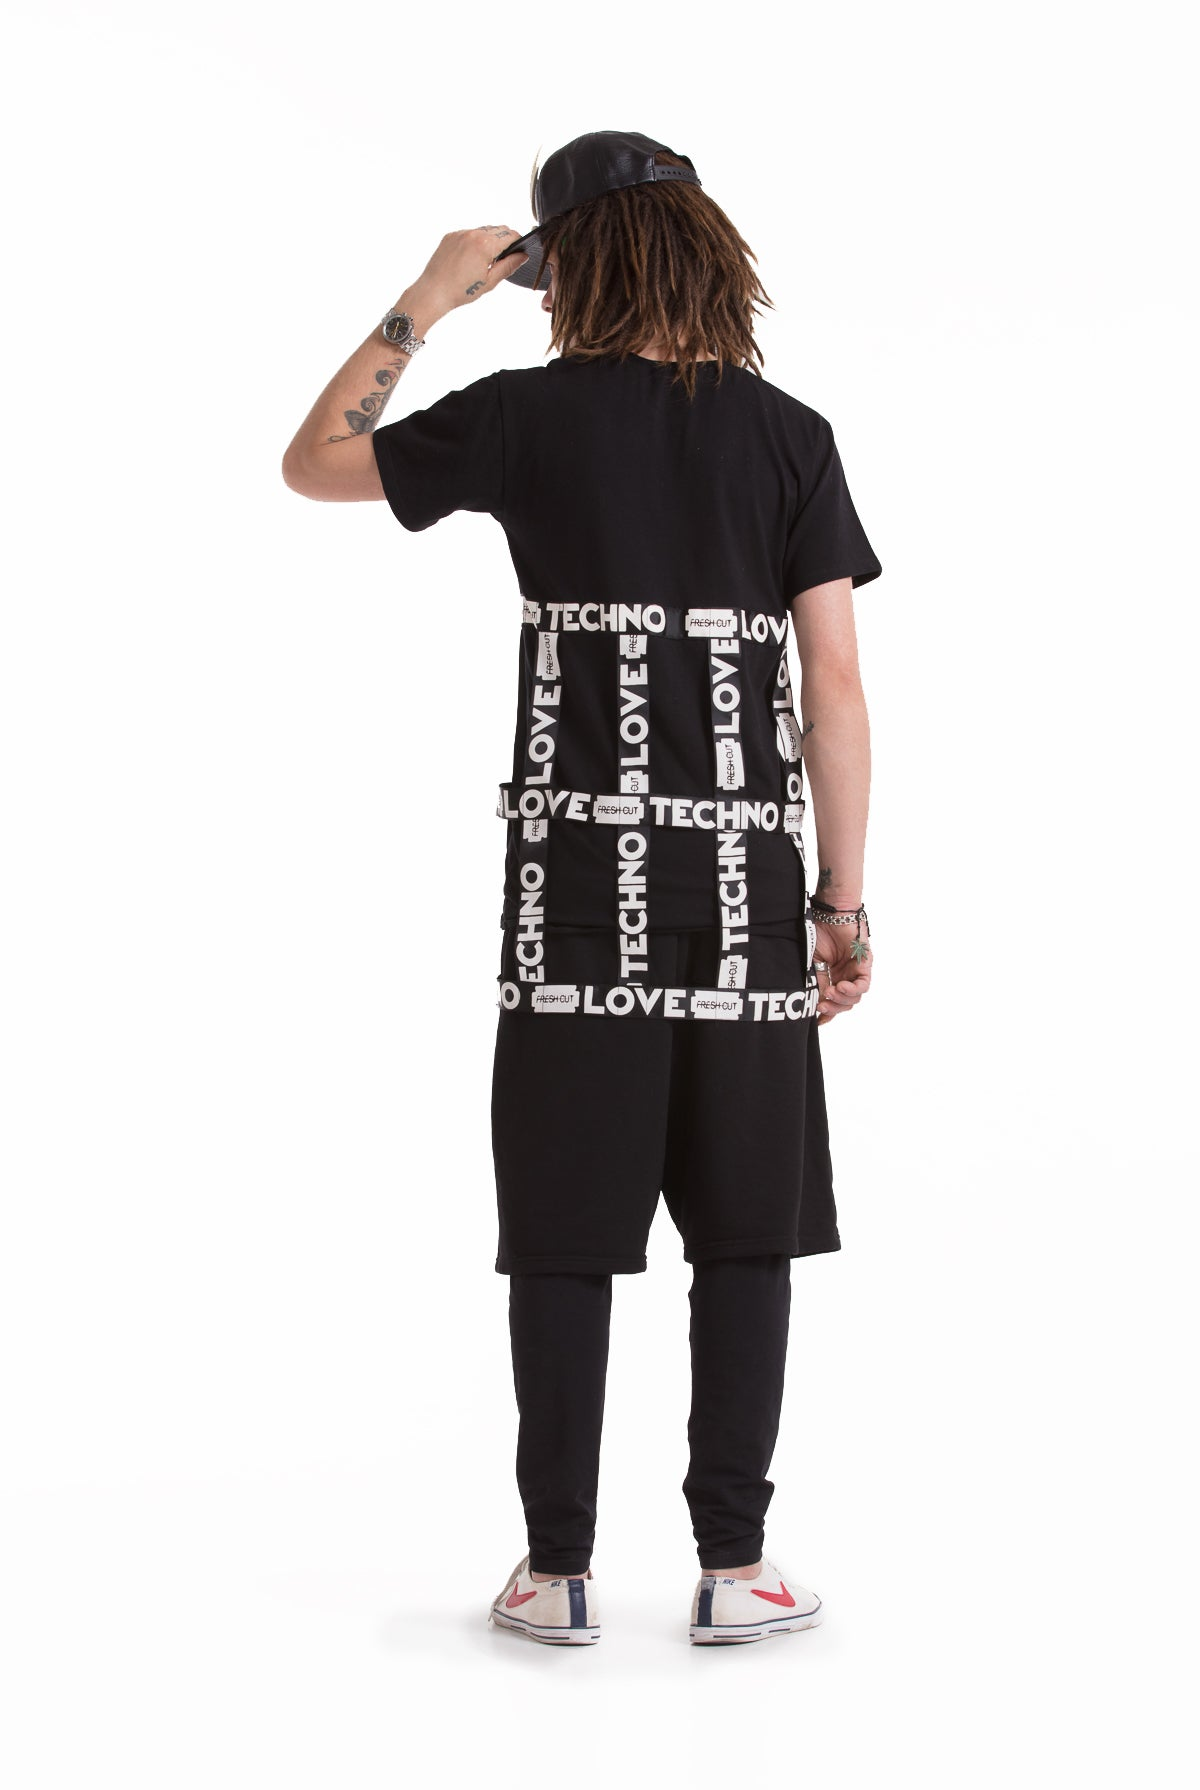 Love Techno caged longfit T-shirt.